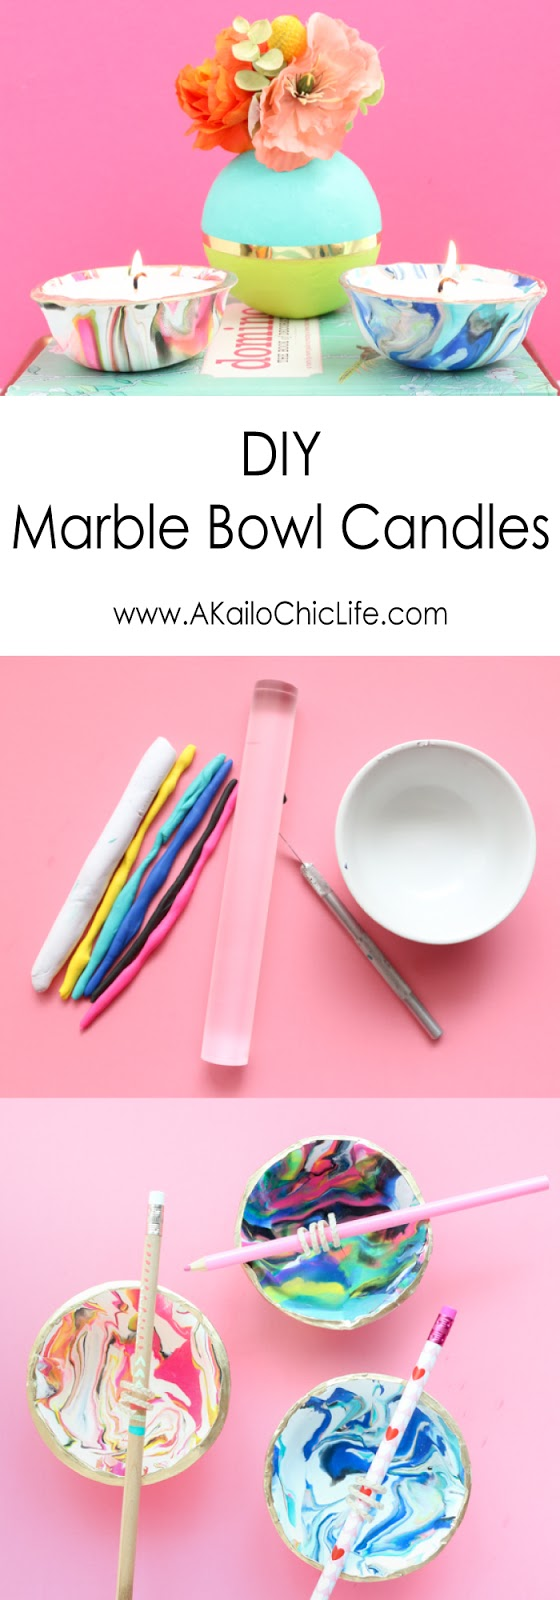 Learn how to make your own marble clay bowls and turn them into the cutest candles perfect for DIY gifts and other handmade gift ideas